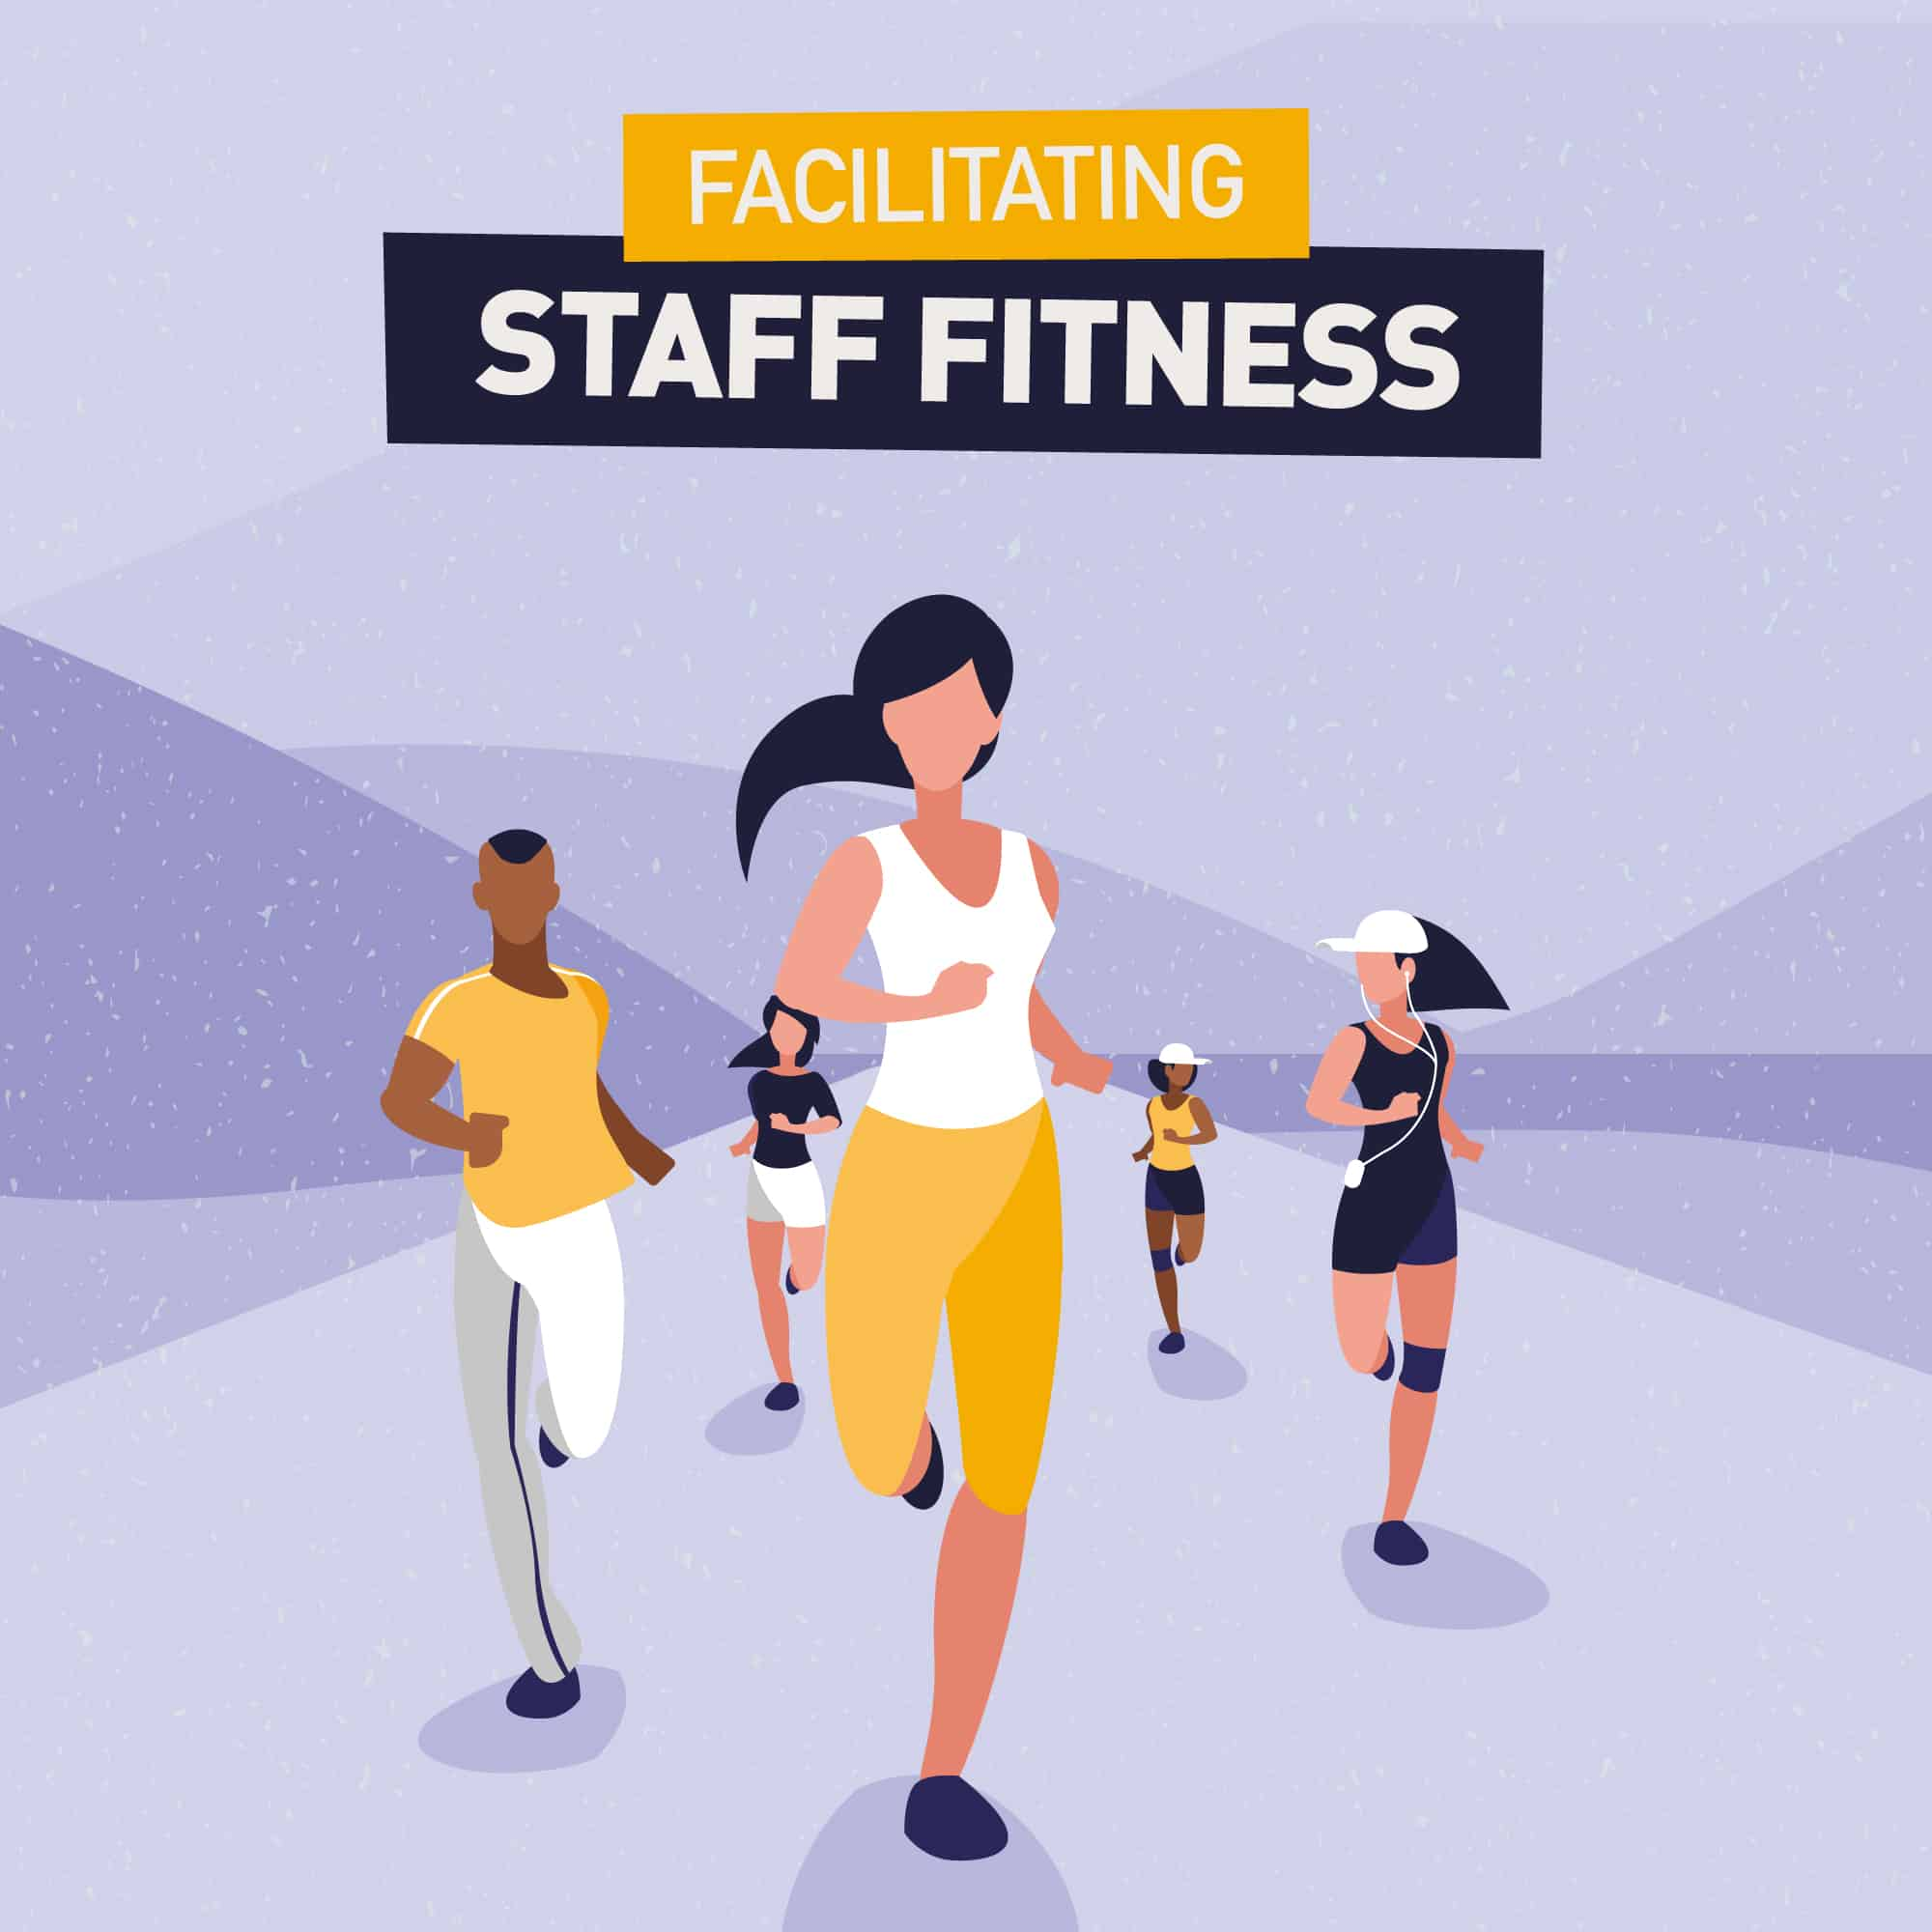 Facilitating Staff Fitness